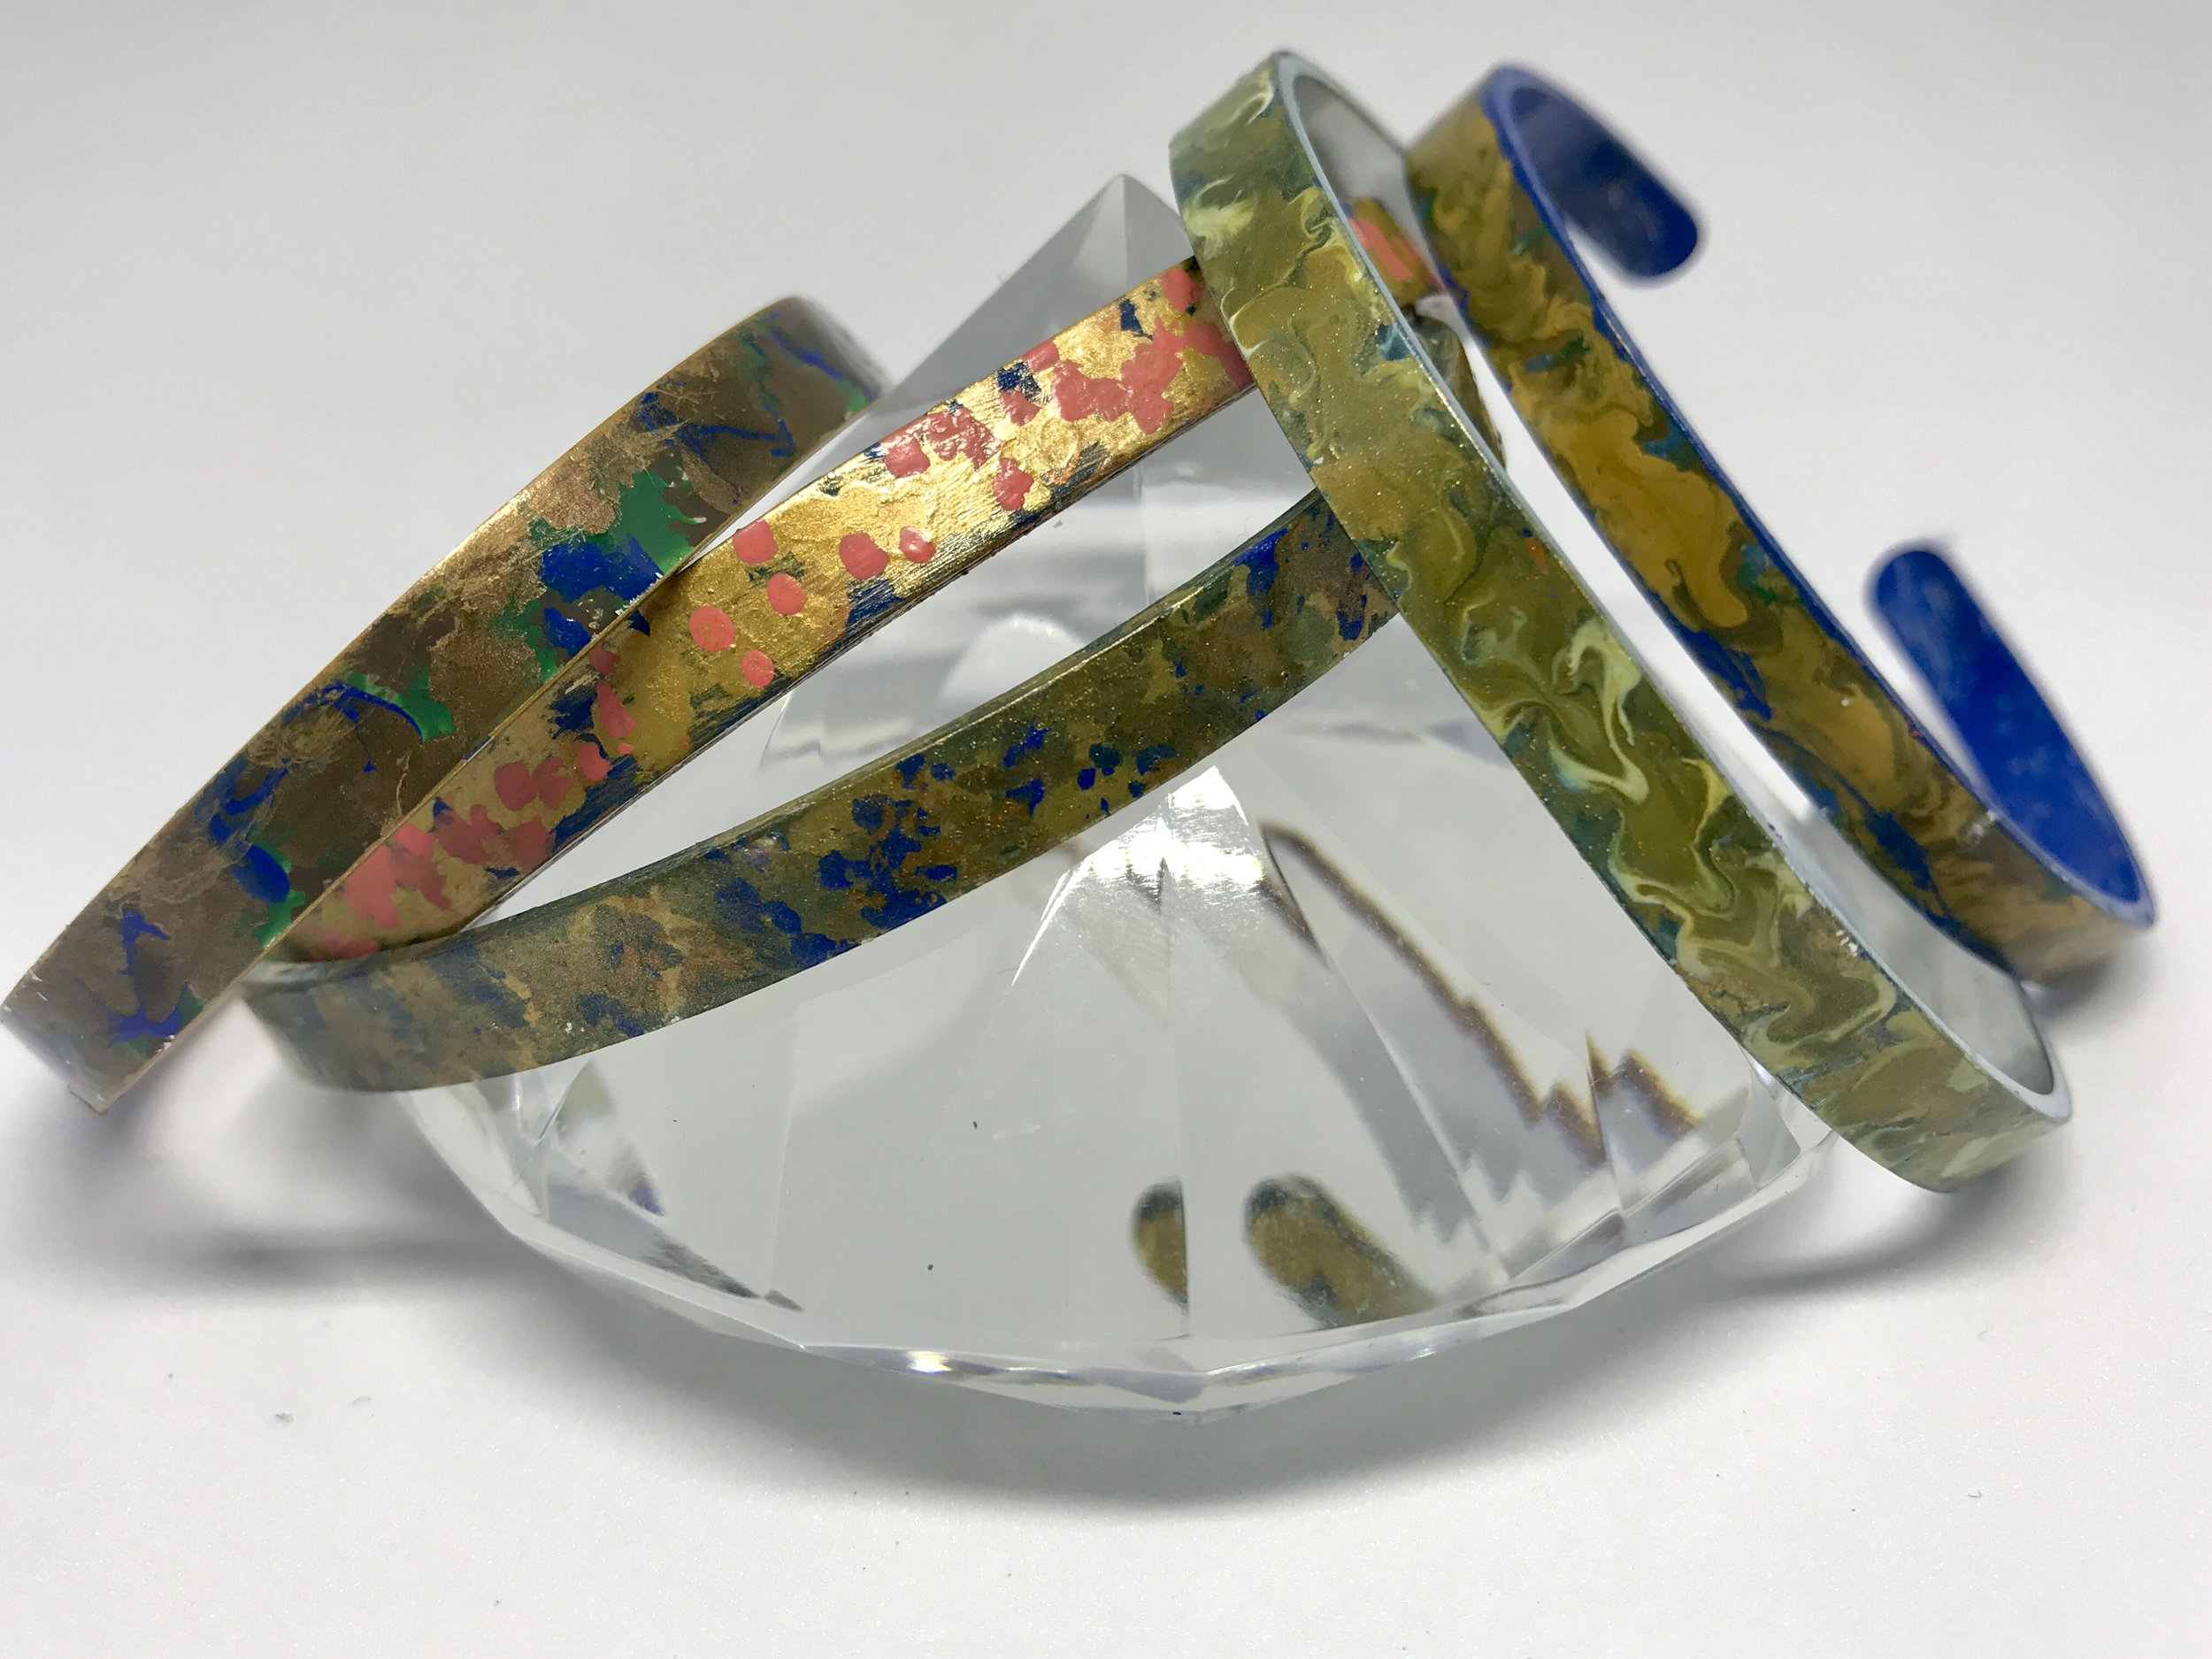 Handmade metal cuffs/bracelets - More to come